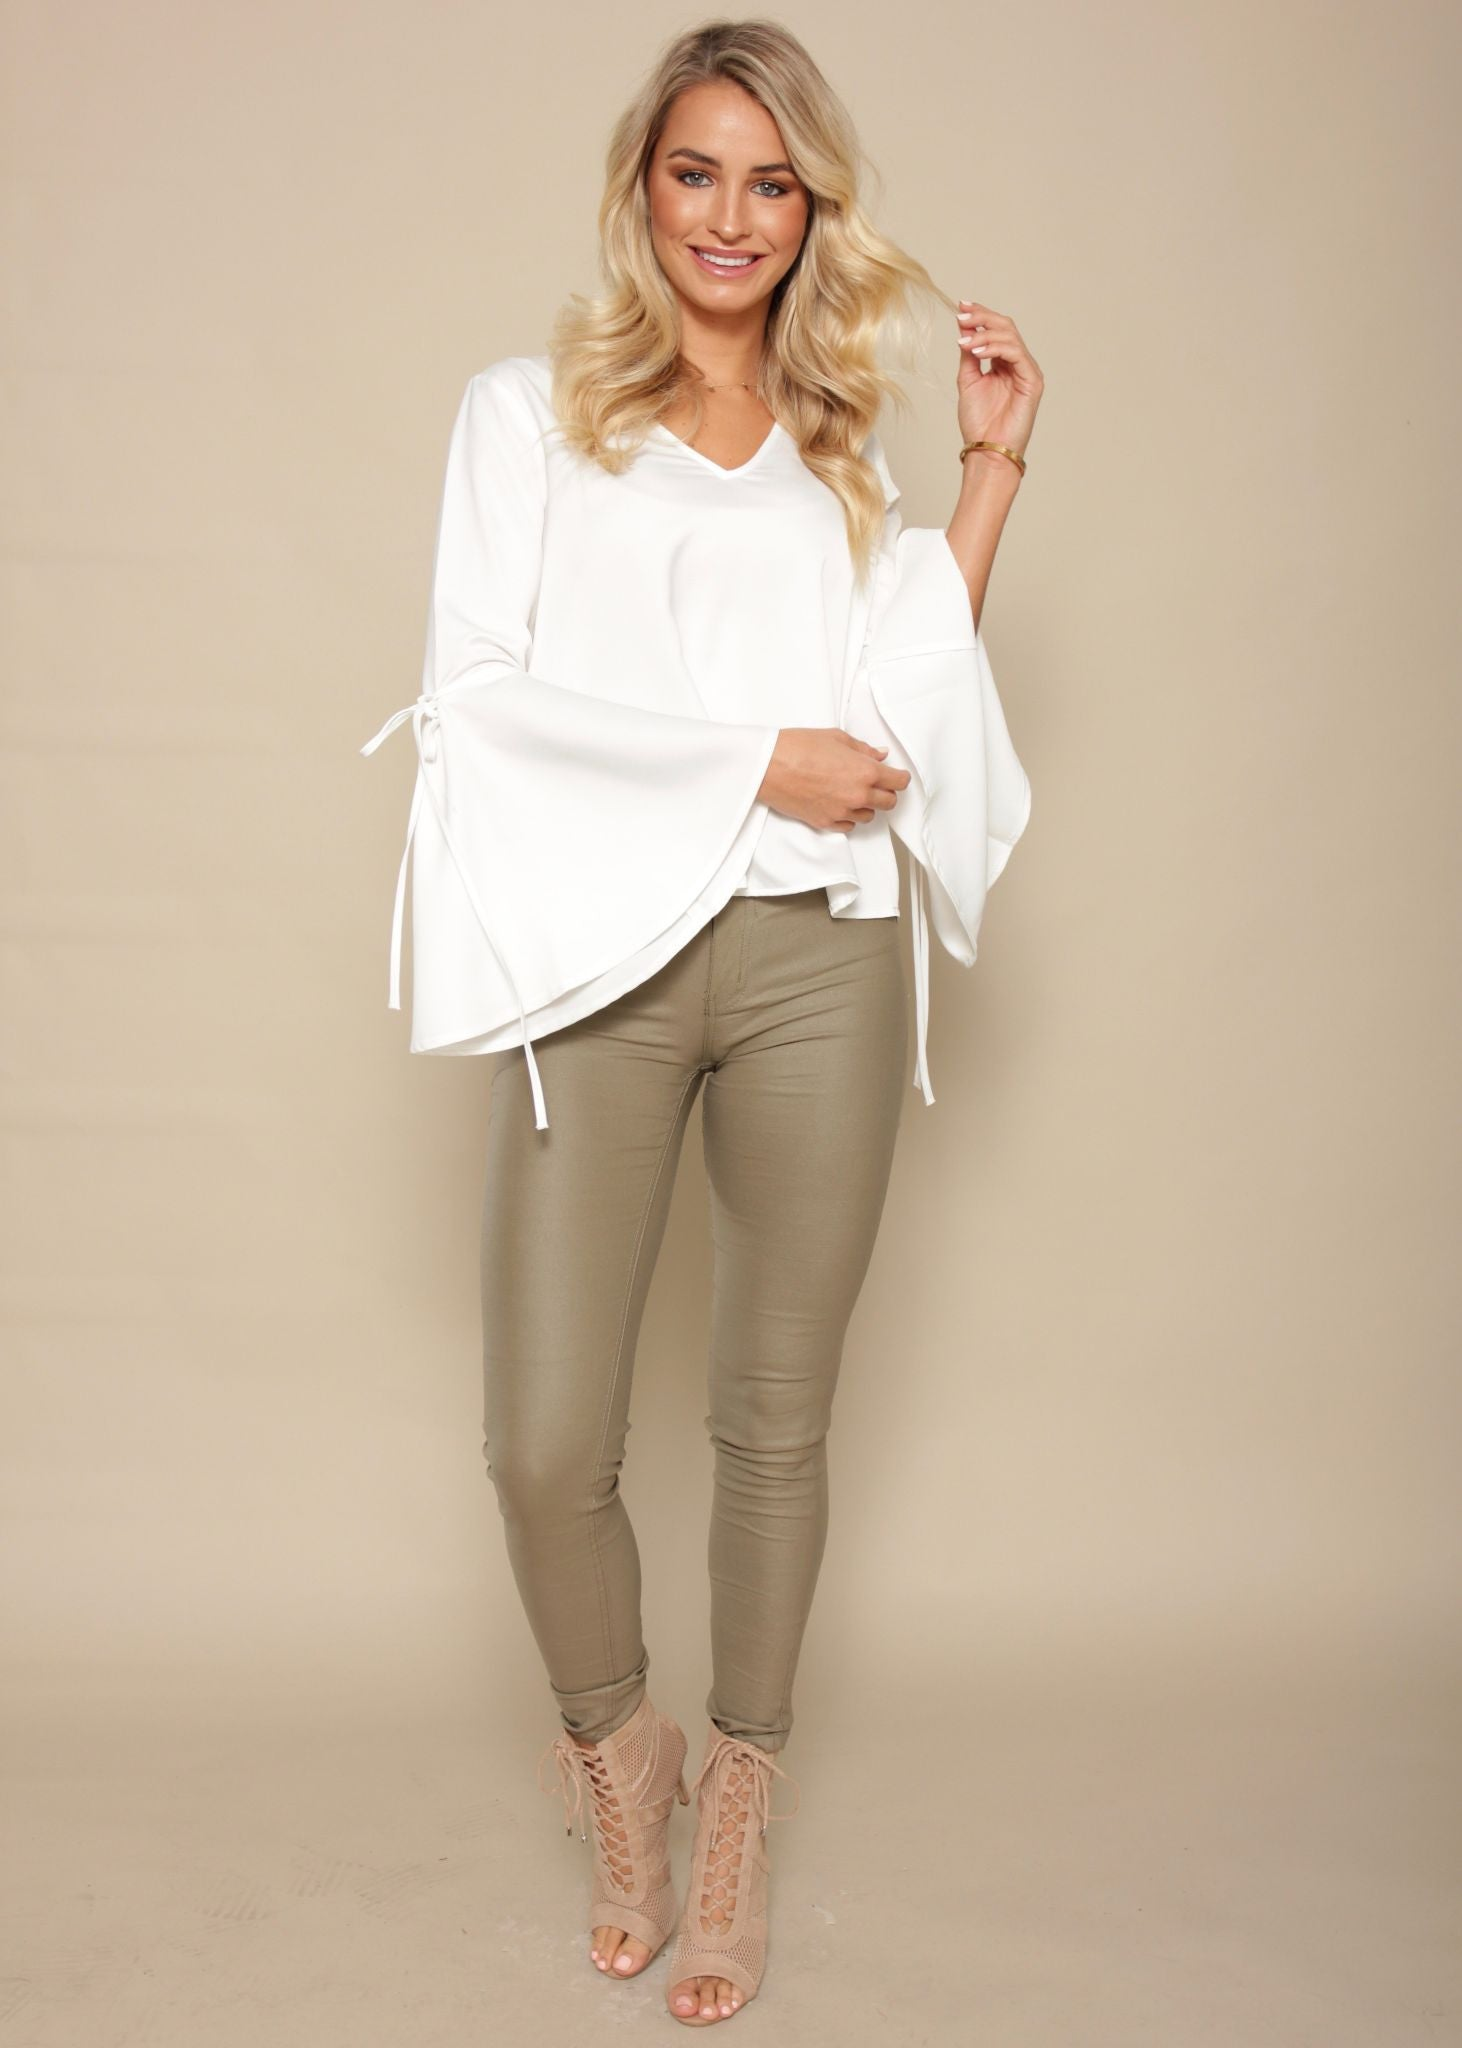 City Girl Blouse - Ivory